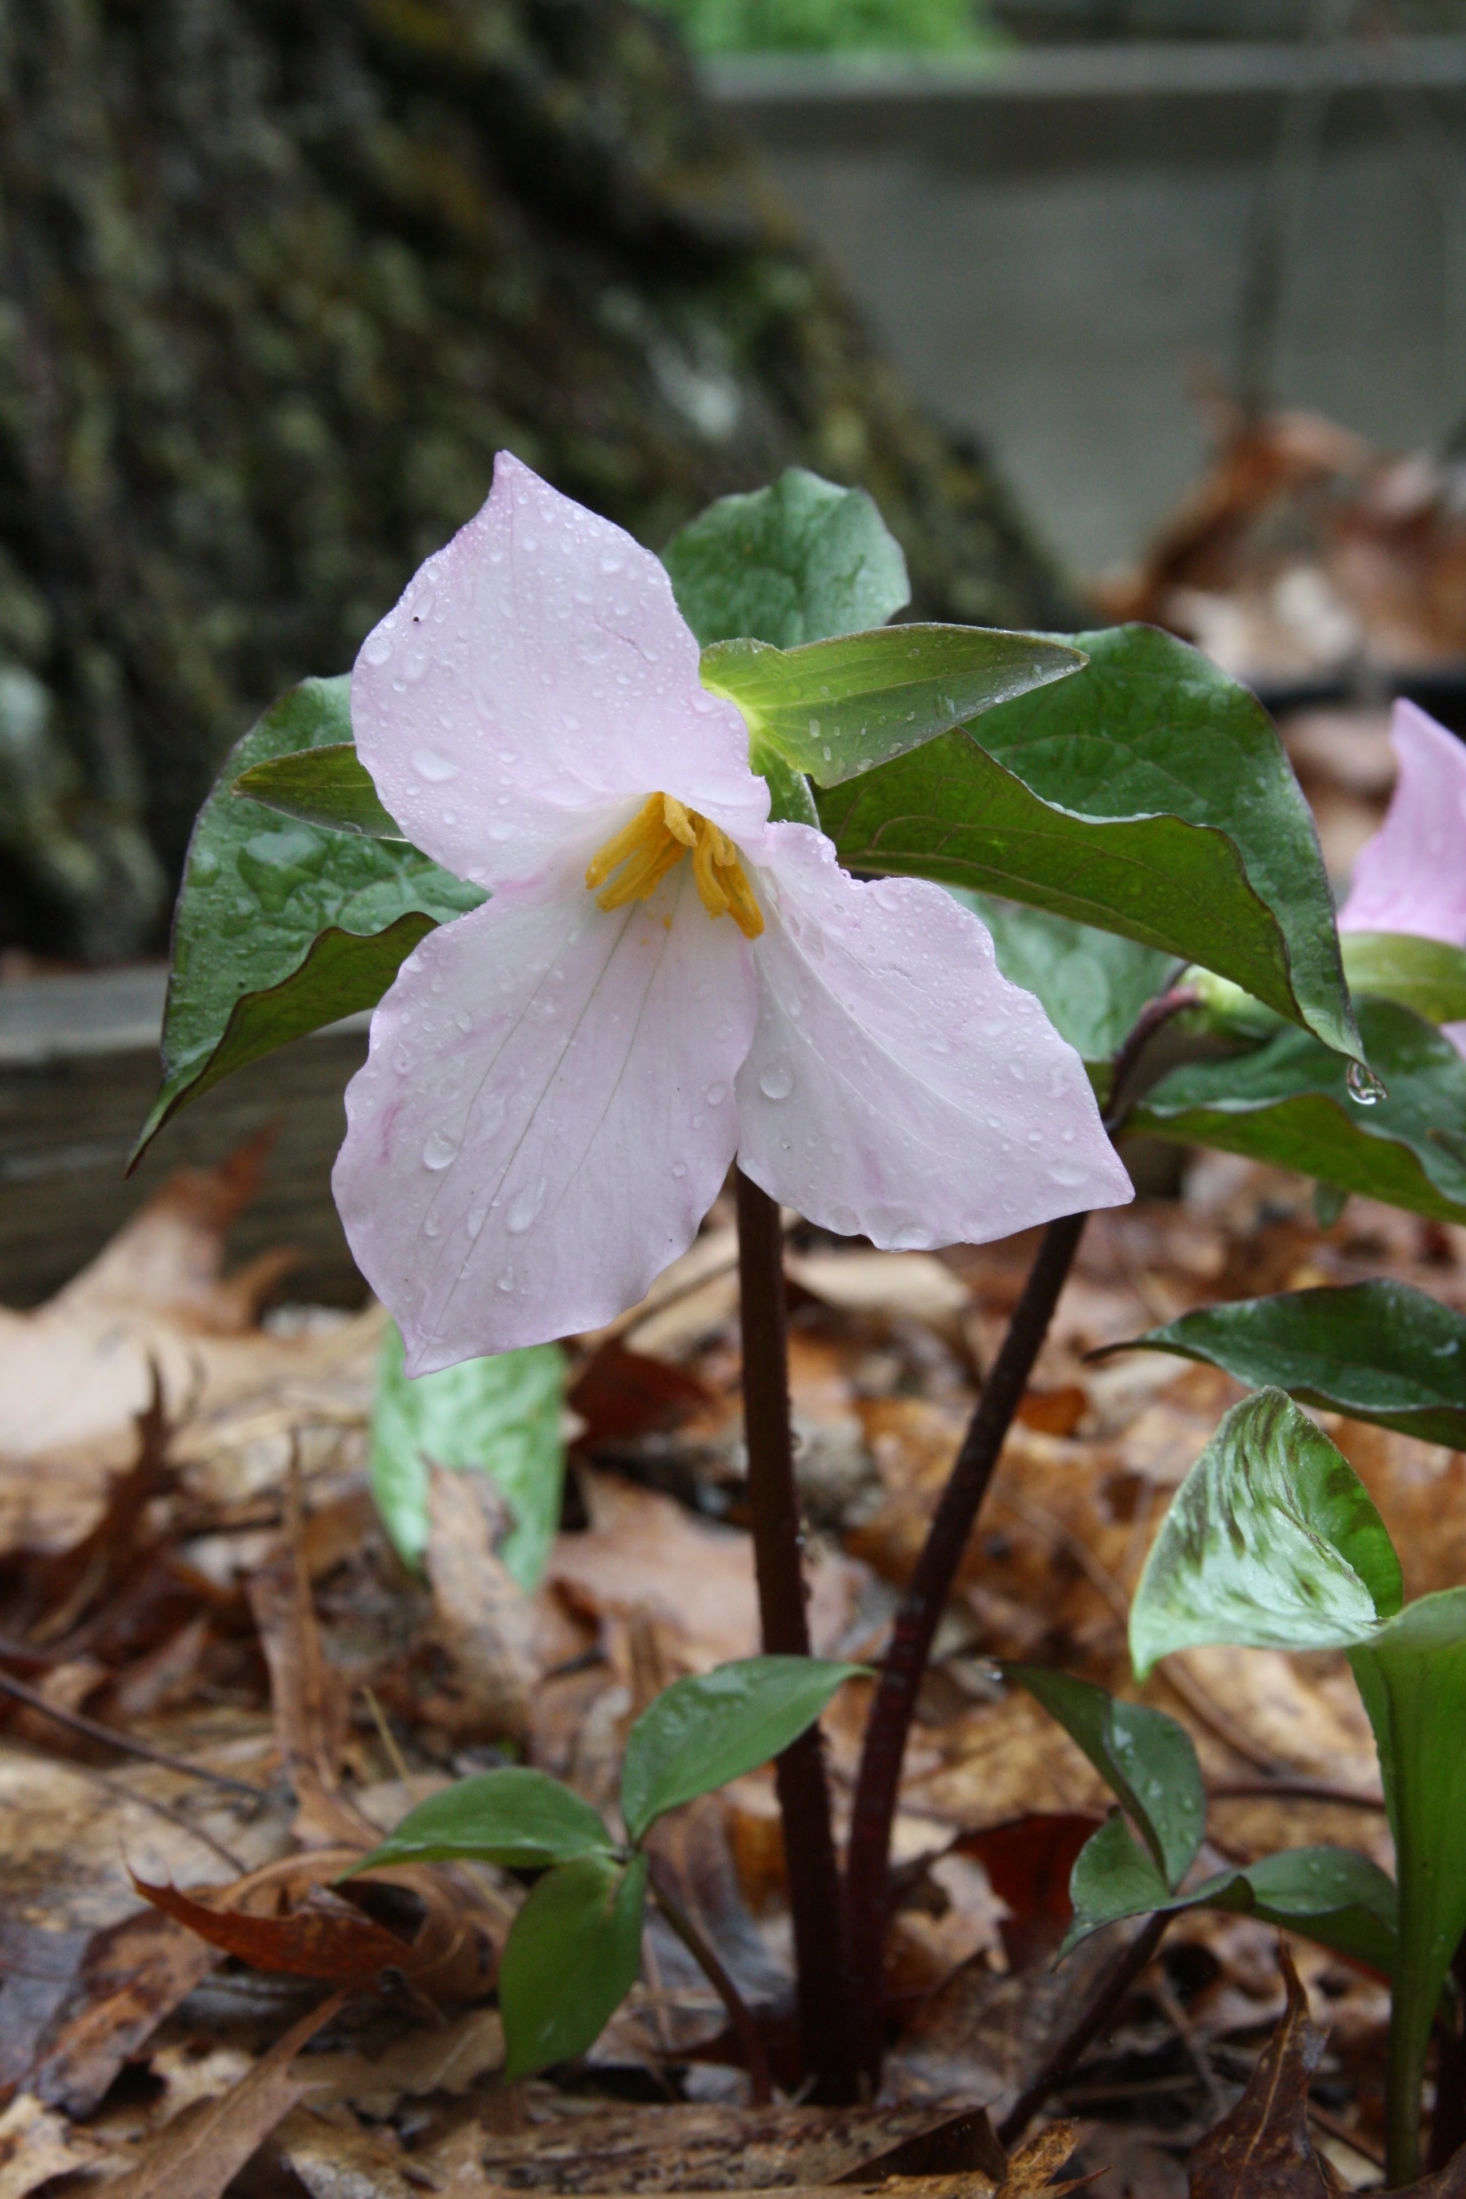 After Trillium grandiflorum has been pollinated, its petals turn pink to signal to insects that they may move on. Also in this family, T. roseum has pink flowers to begin with, so insects will pass it by; this variety must be pollinated by hand. Photograph by Dan Jaffe.